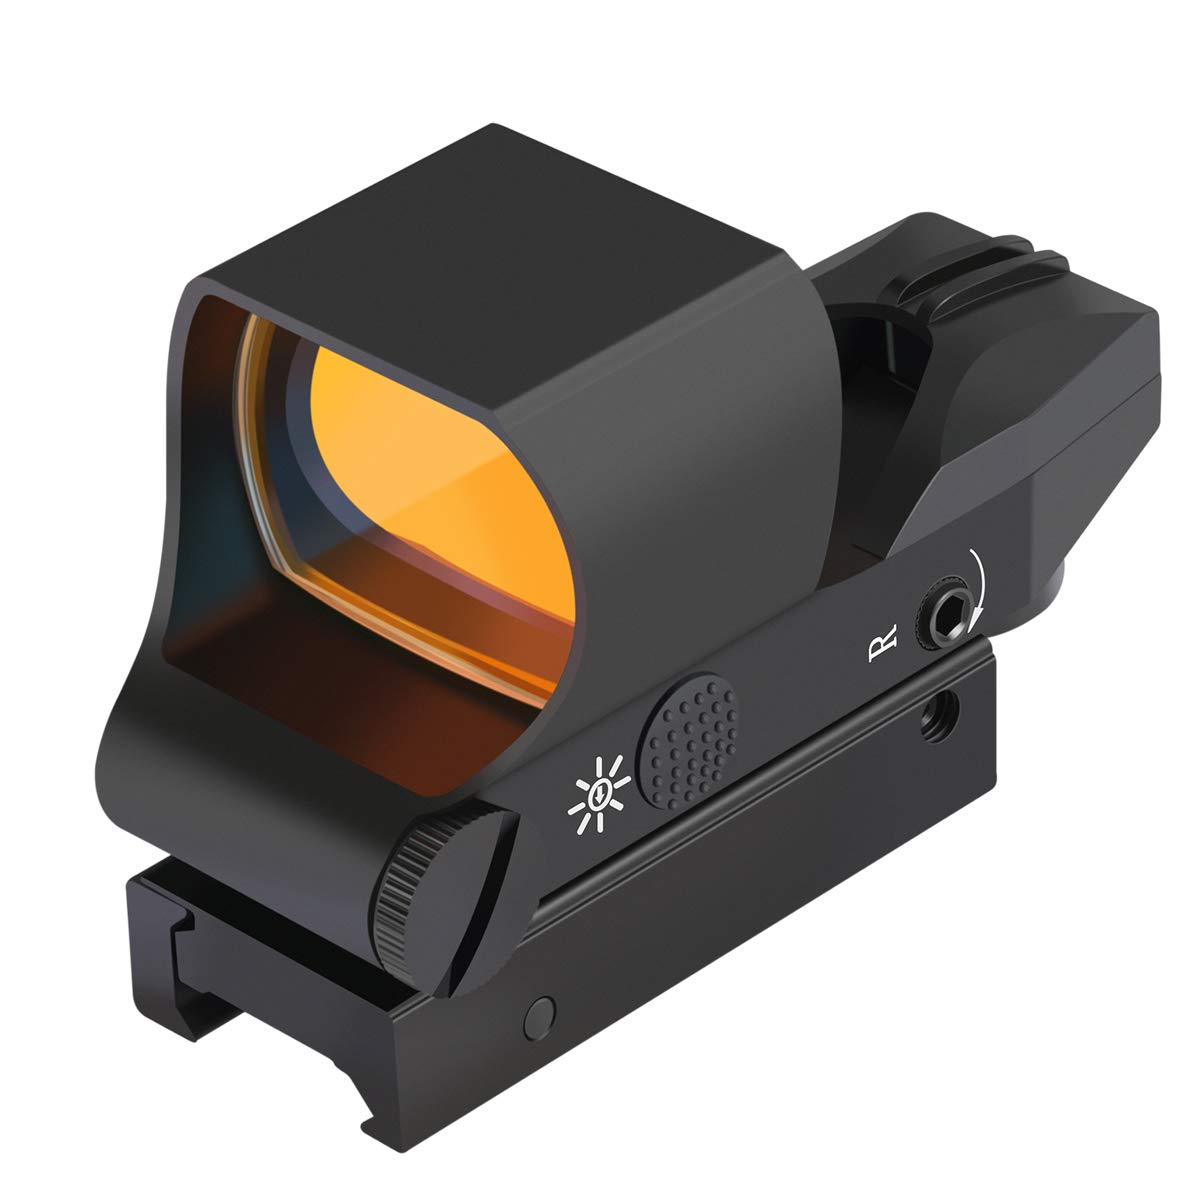 Feyachi RS-30 Reflex Sight, Multiple Reticle System Red Dot Sight with Picatinny Rail Mount, Absolute Co-Witness with Iron Sight by Feyachi